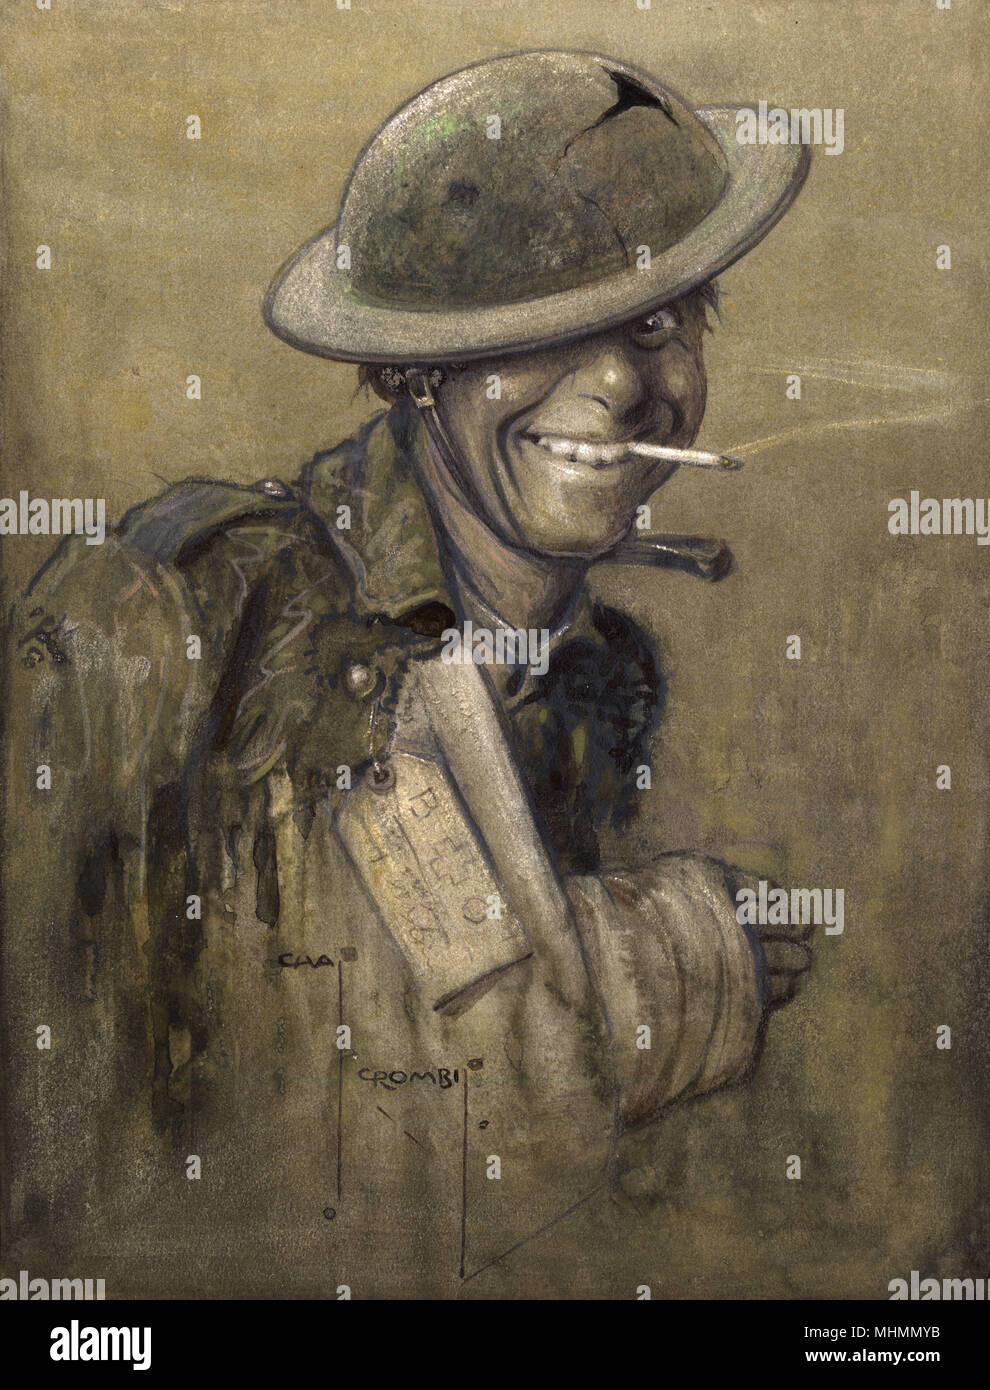 'A Blighty One' by Charles Crombie. A cheery First World War British Tommy,  happy to have received a 'blighty' wound (one bad enough to warrant being  sent ...